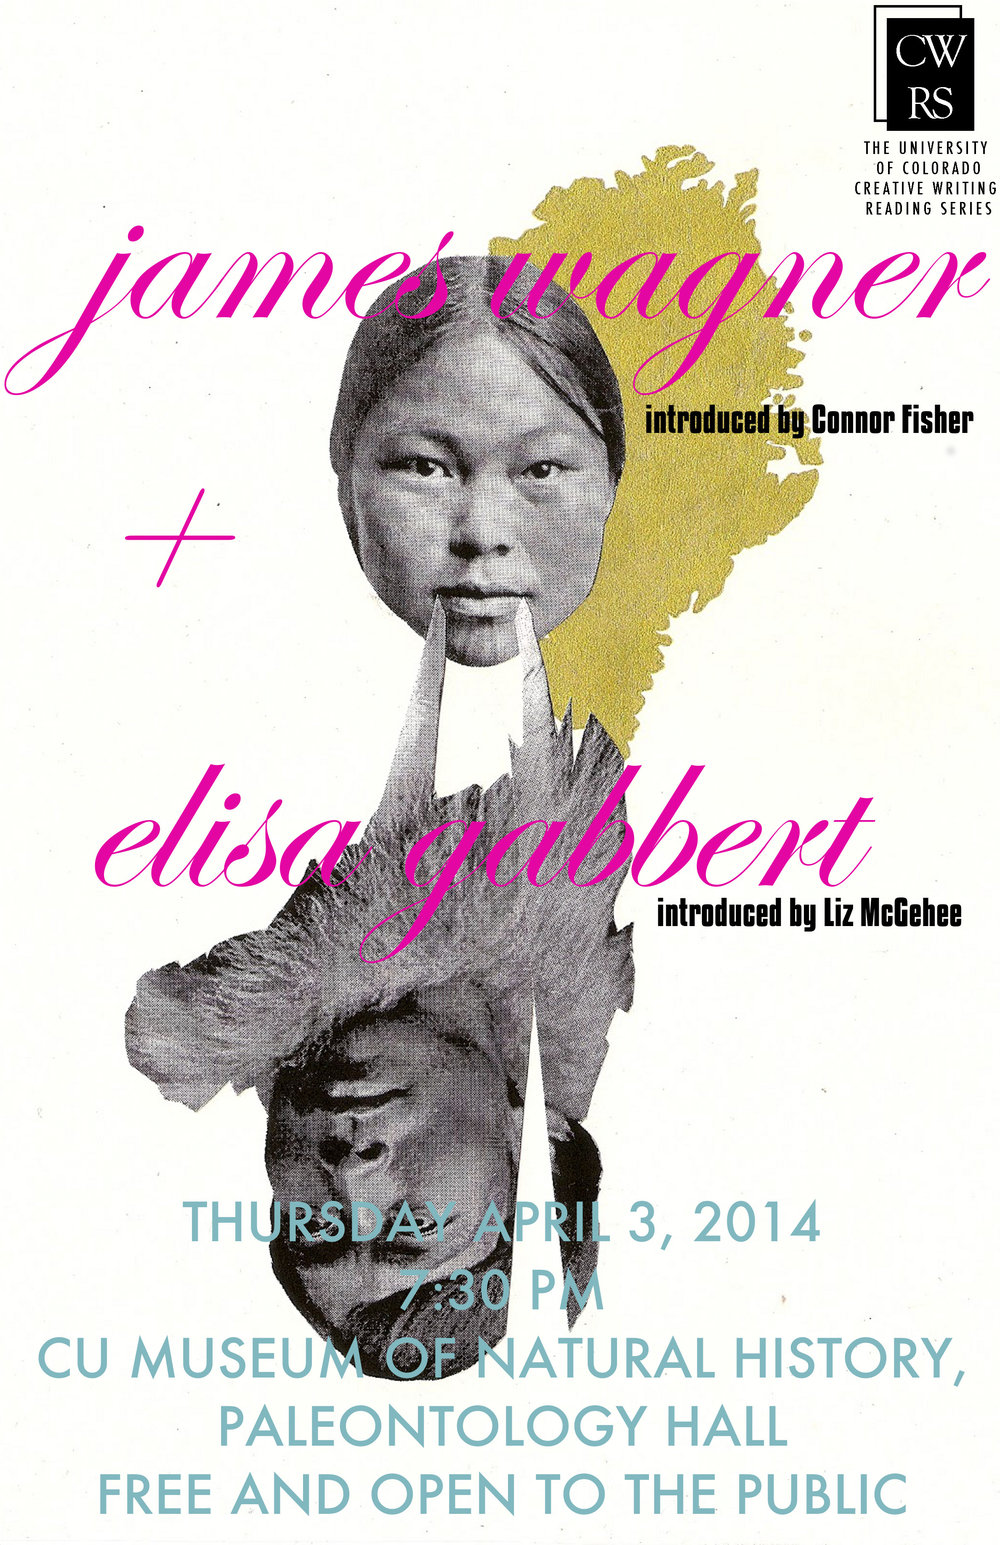 University of Colorado Boulder Creative Writing Reading Series publicity poster, James Wagner and Elisa Gabbert